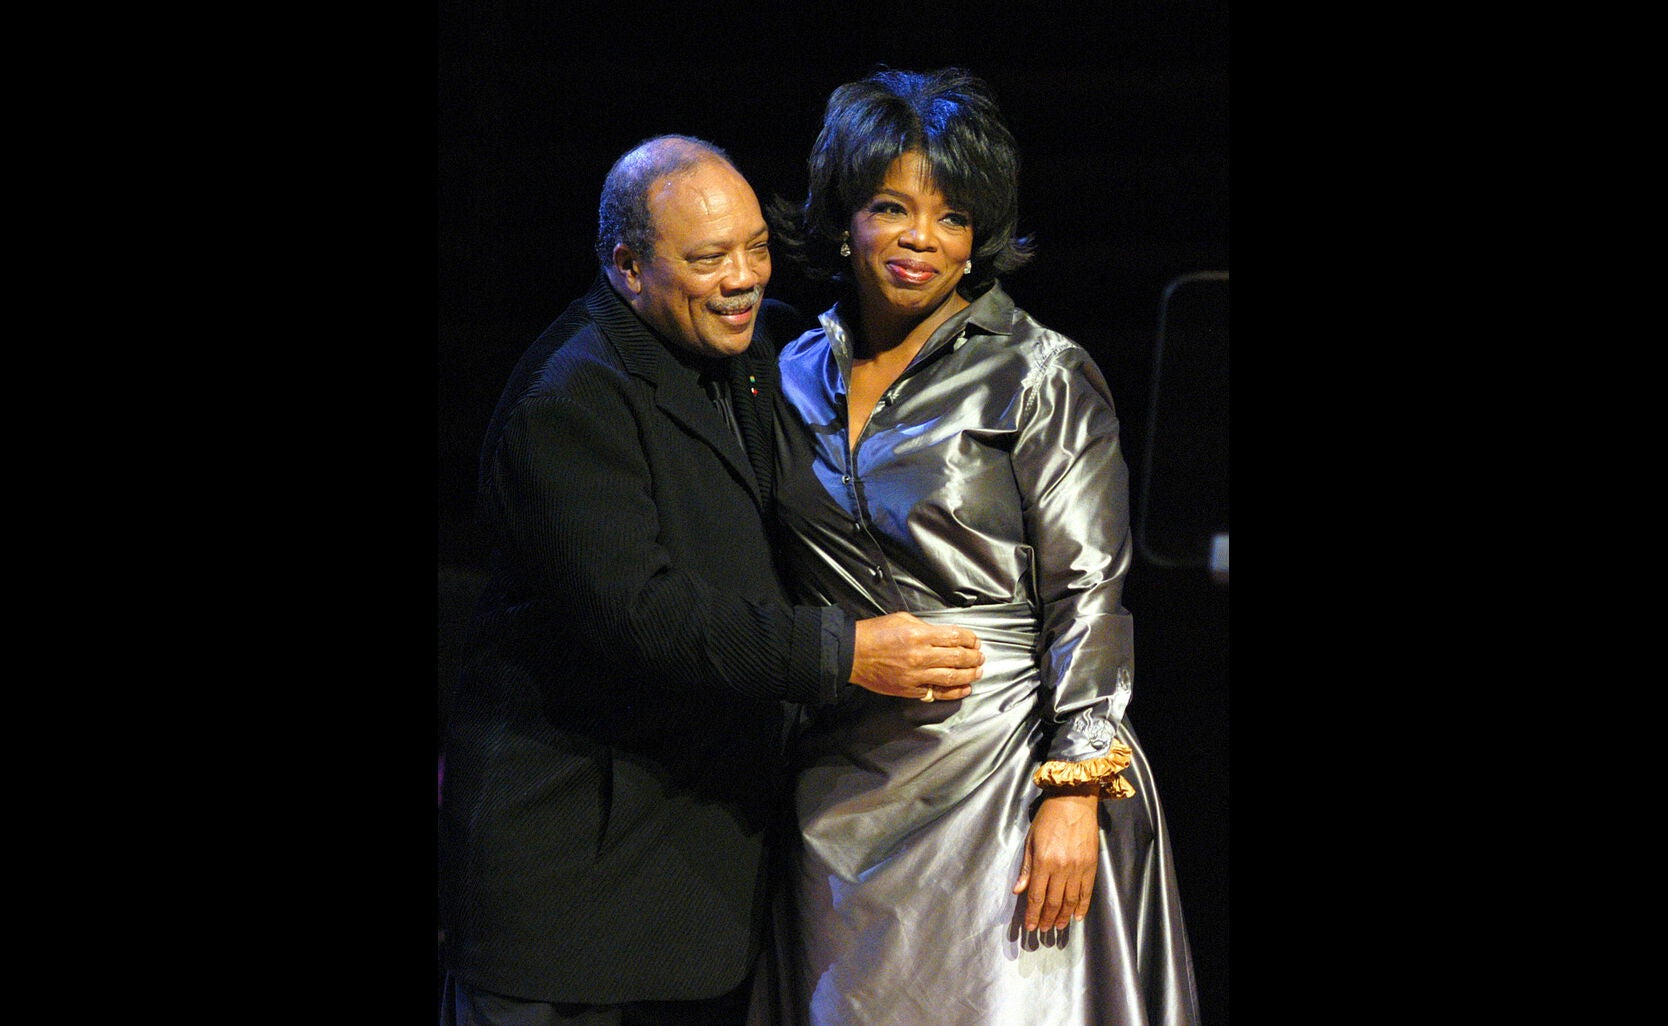 Oprah Winfrey receives an award from Quincy Jones, 2003